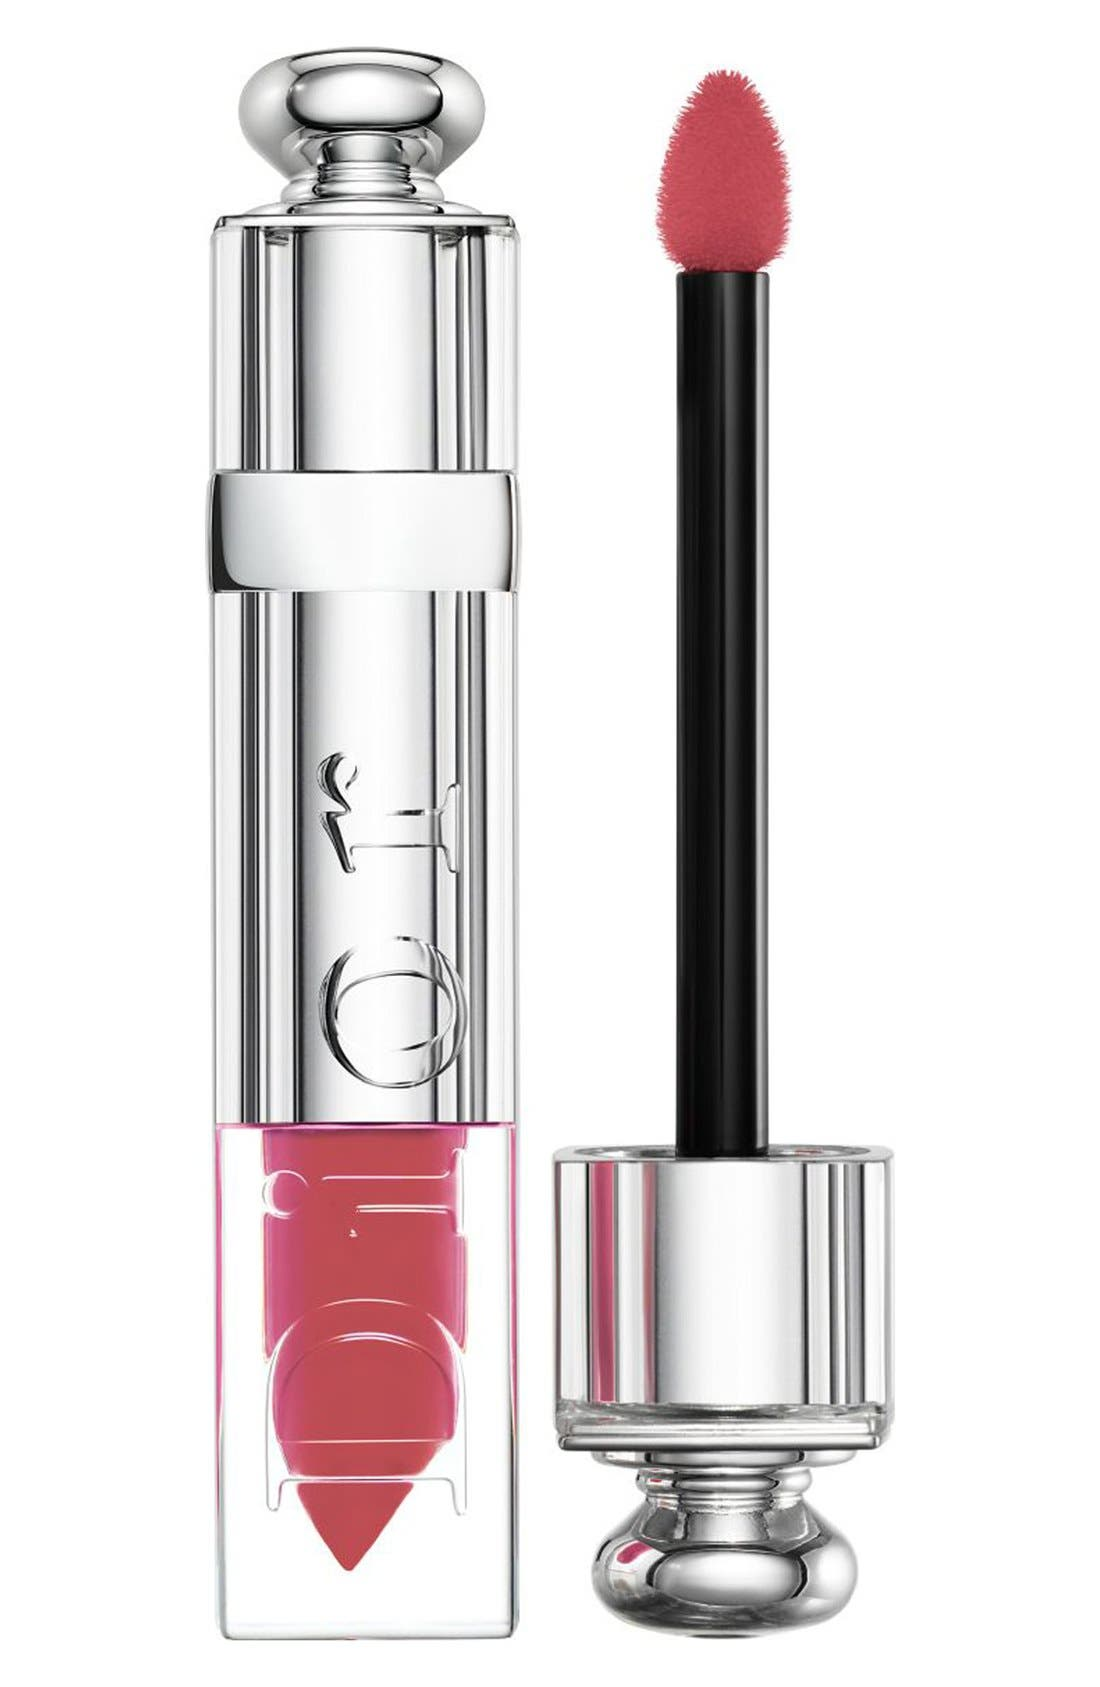 Dior 'Addict' Fluid Stick